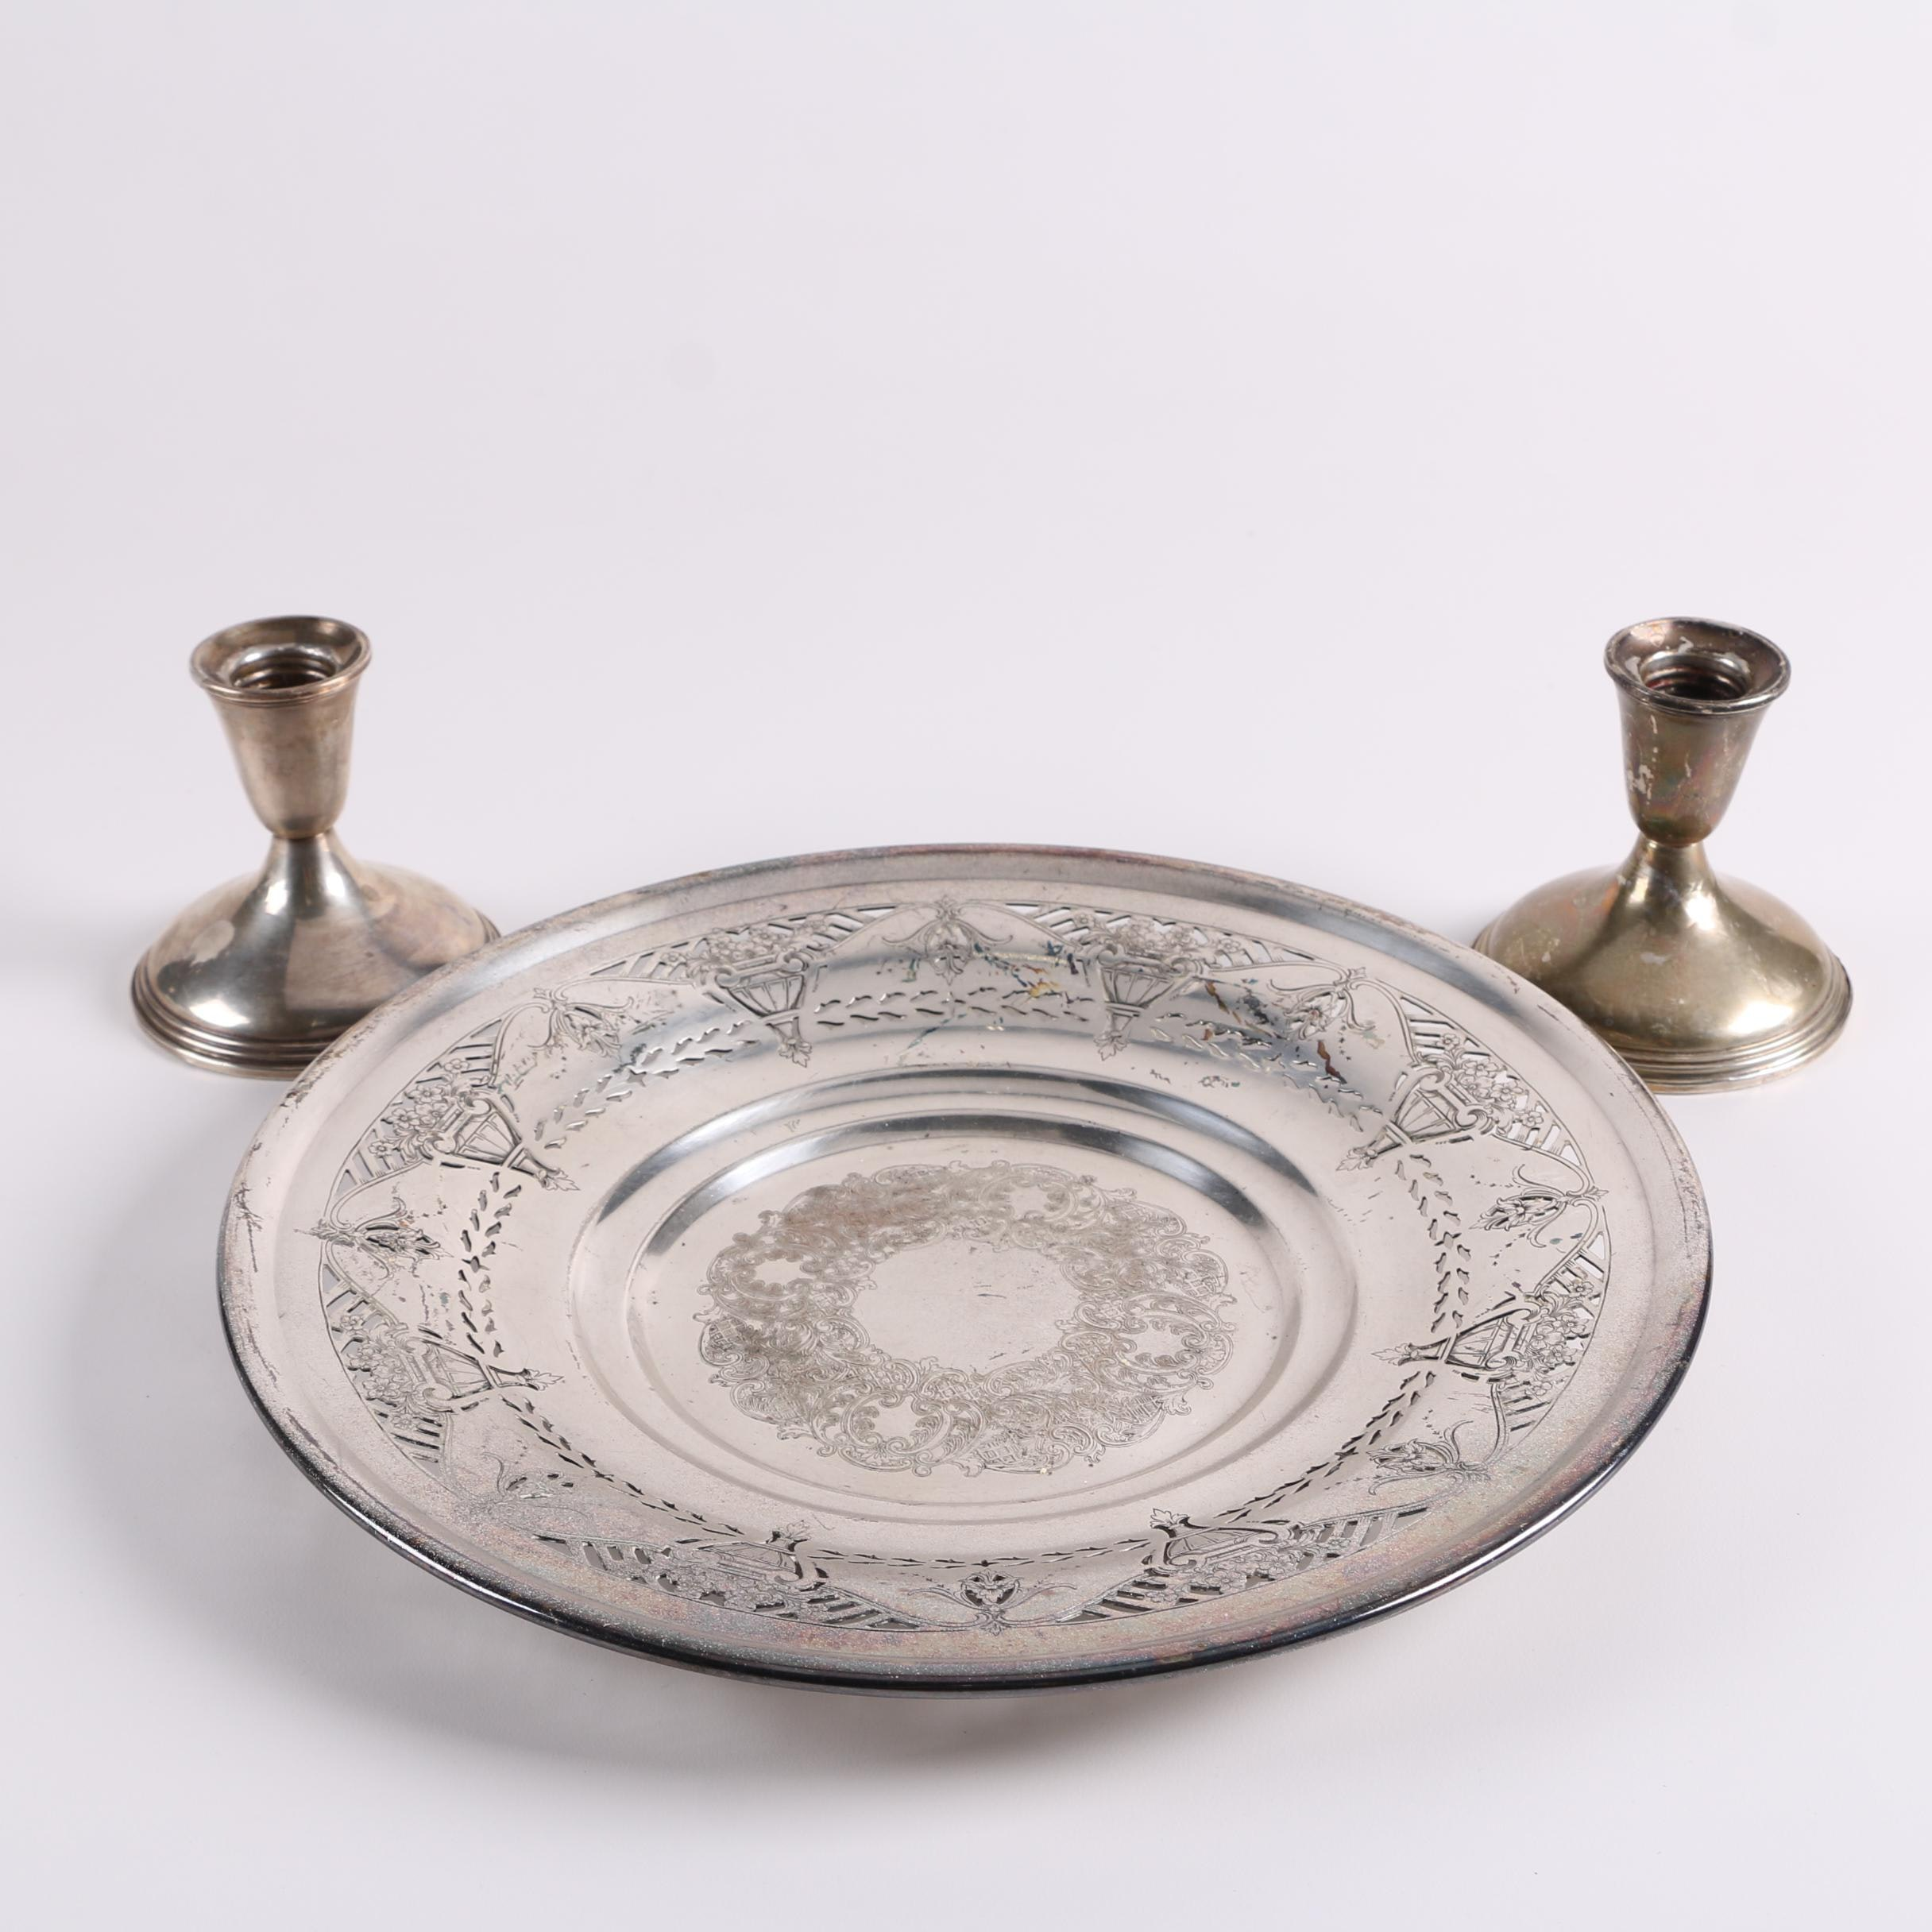 Empire Weighted Sterling Silver Candle Holders with Silver Plate Tray